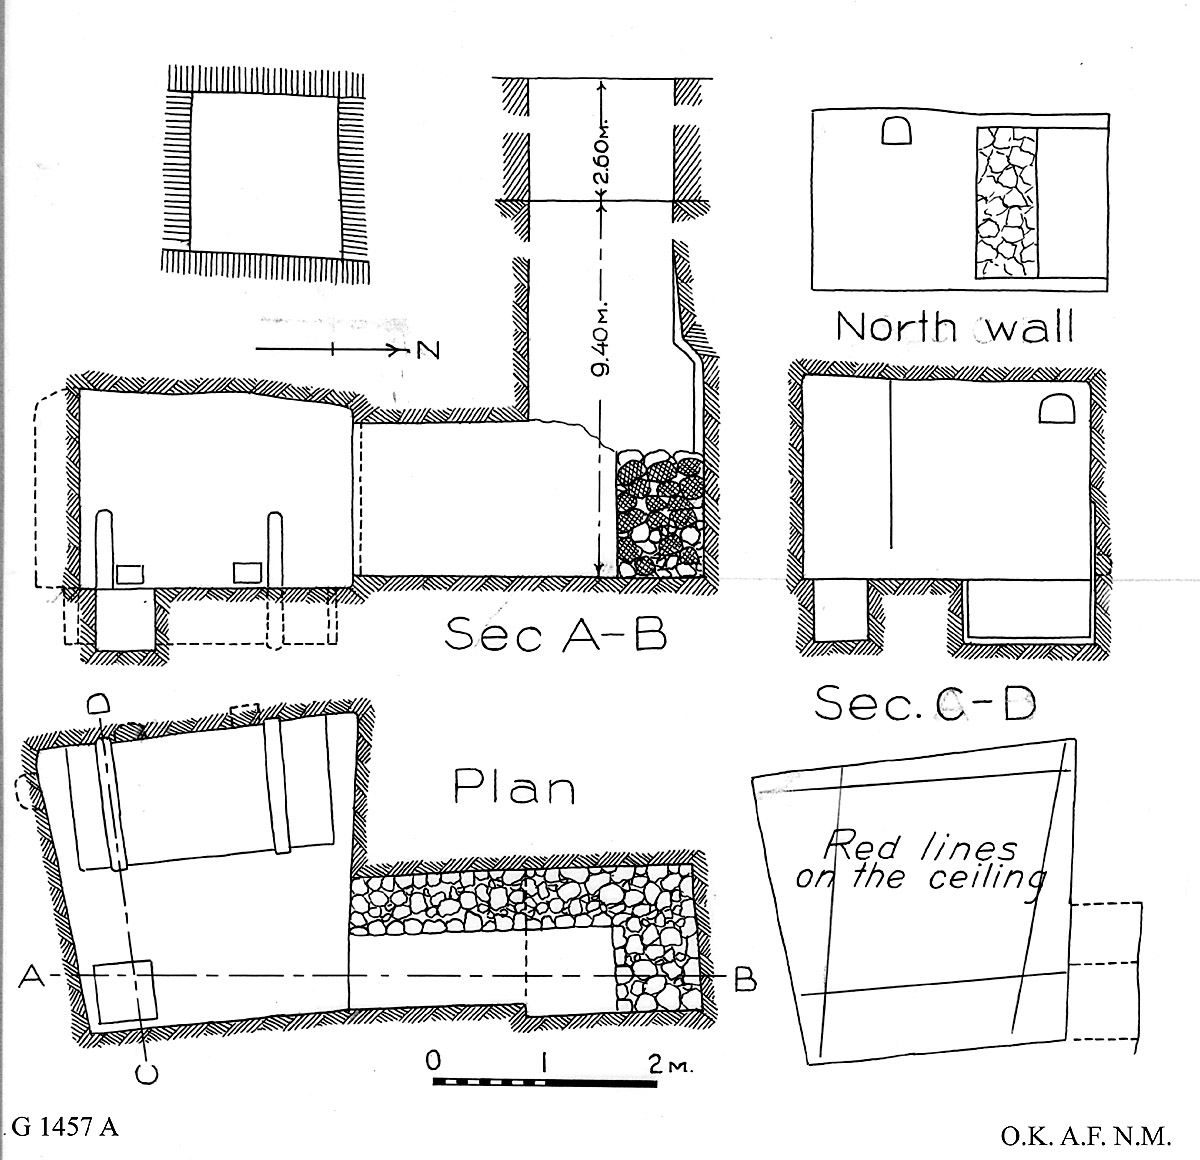 Maps and plans: G 1457, Shaft A